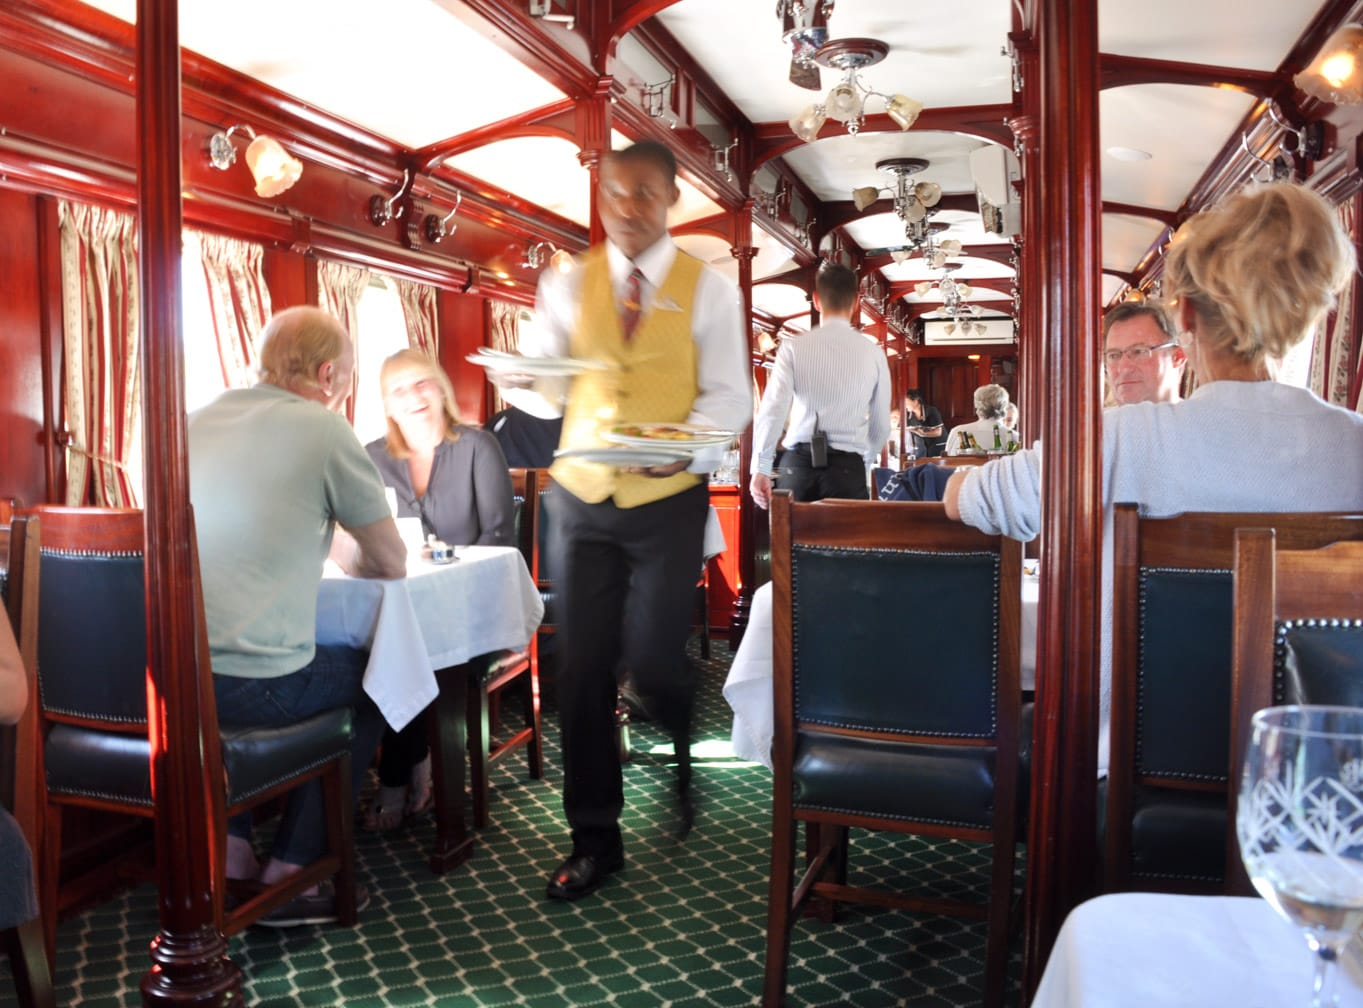 Server carrying food on the Rovos Rail Pride of Africa train